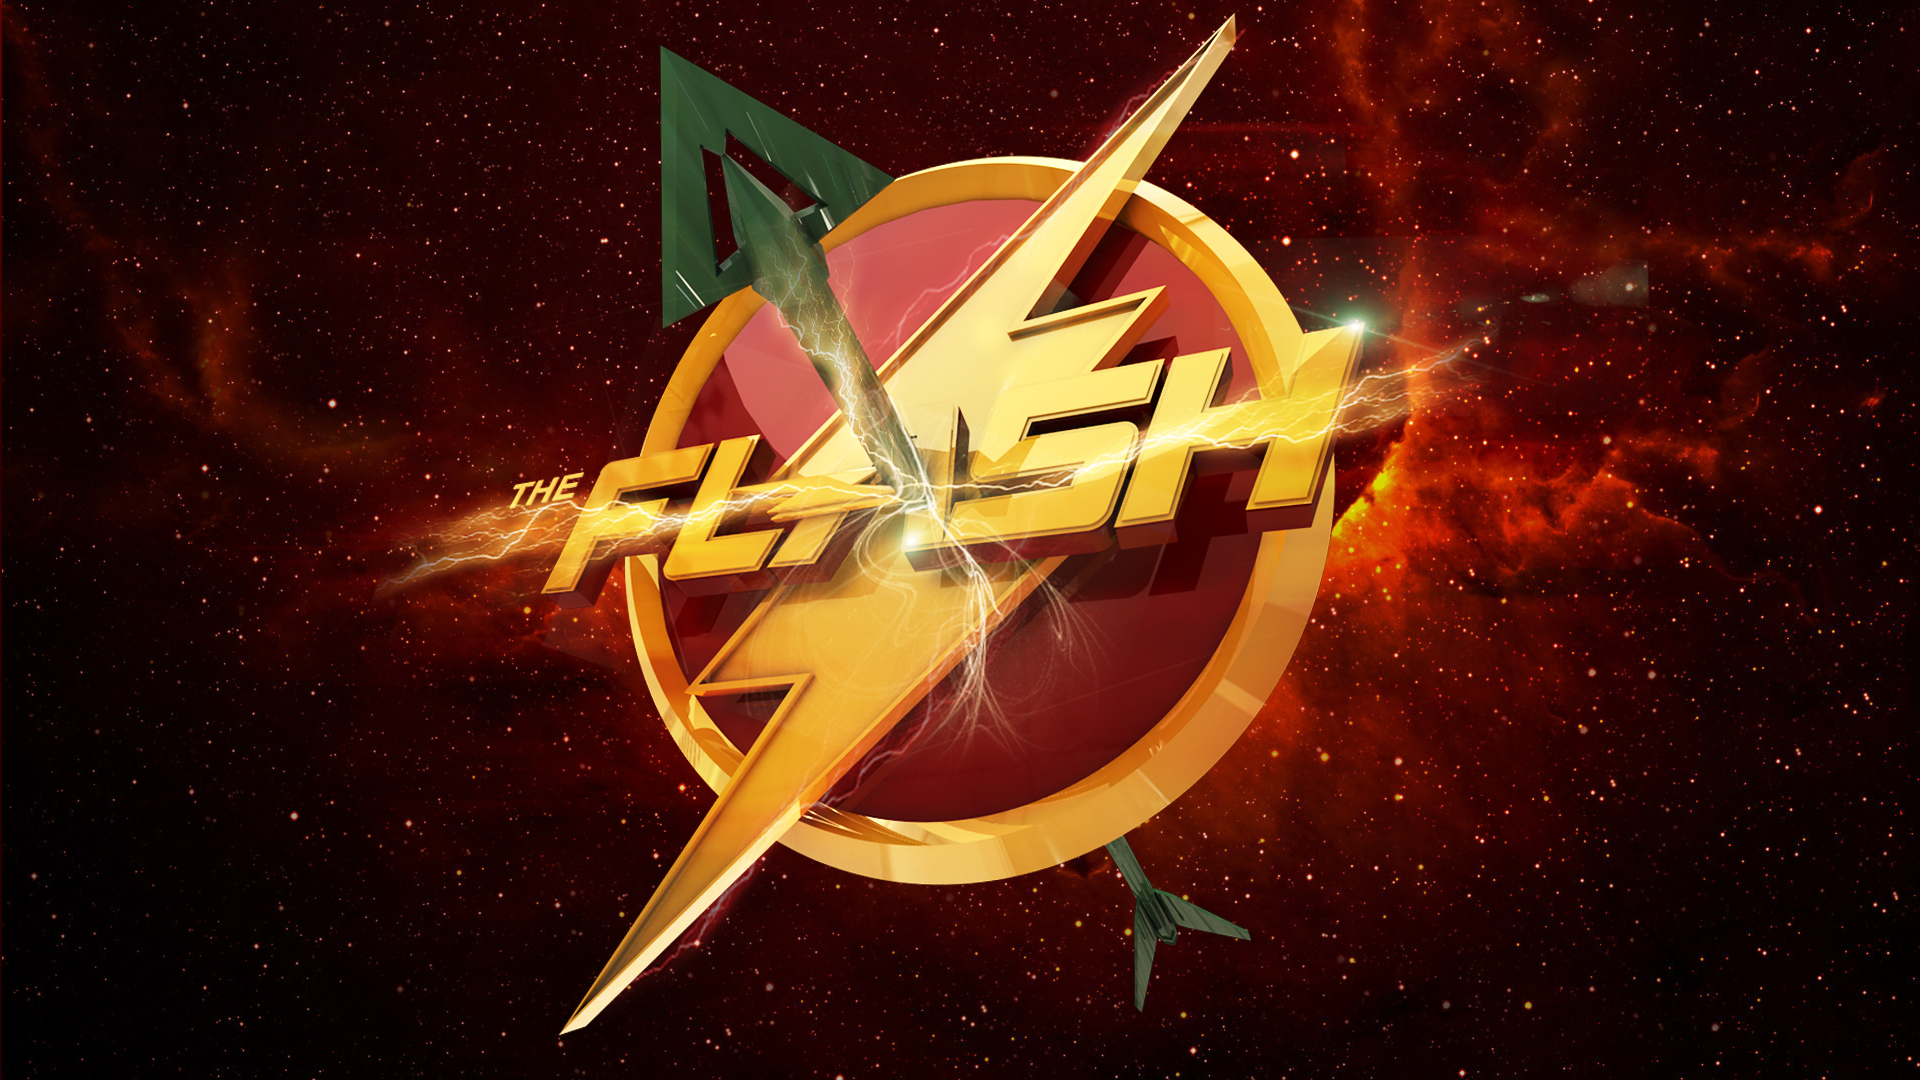 Arrow And Flash Hd Wallpaper Wallpapersafari